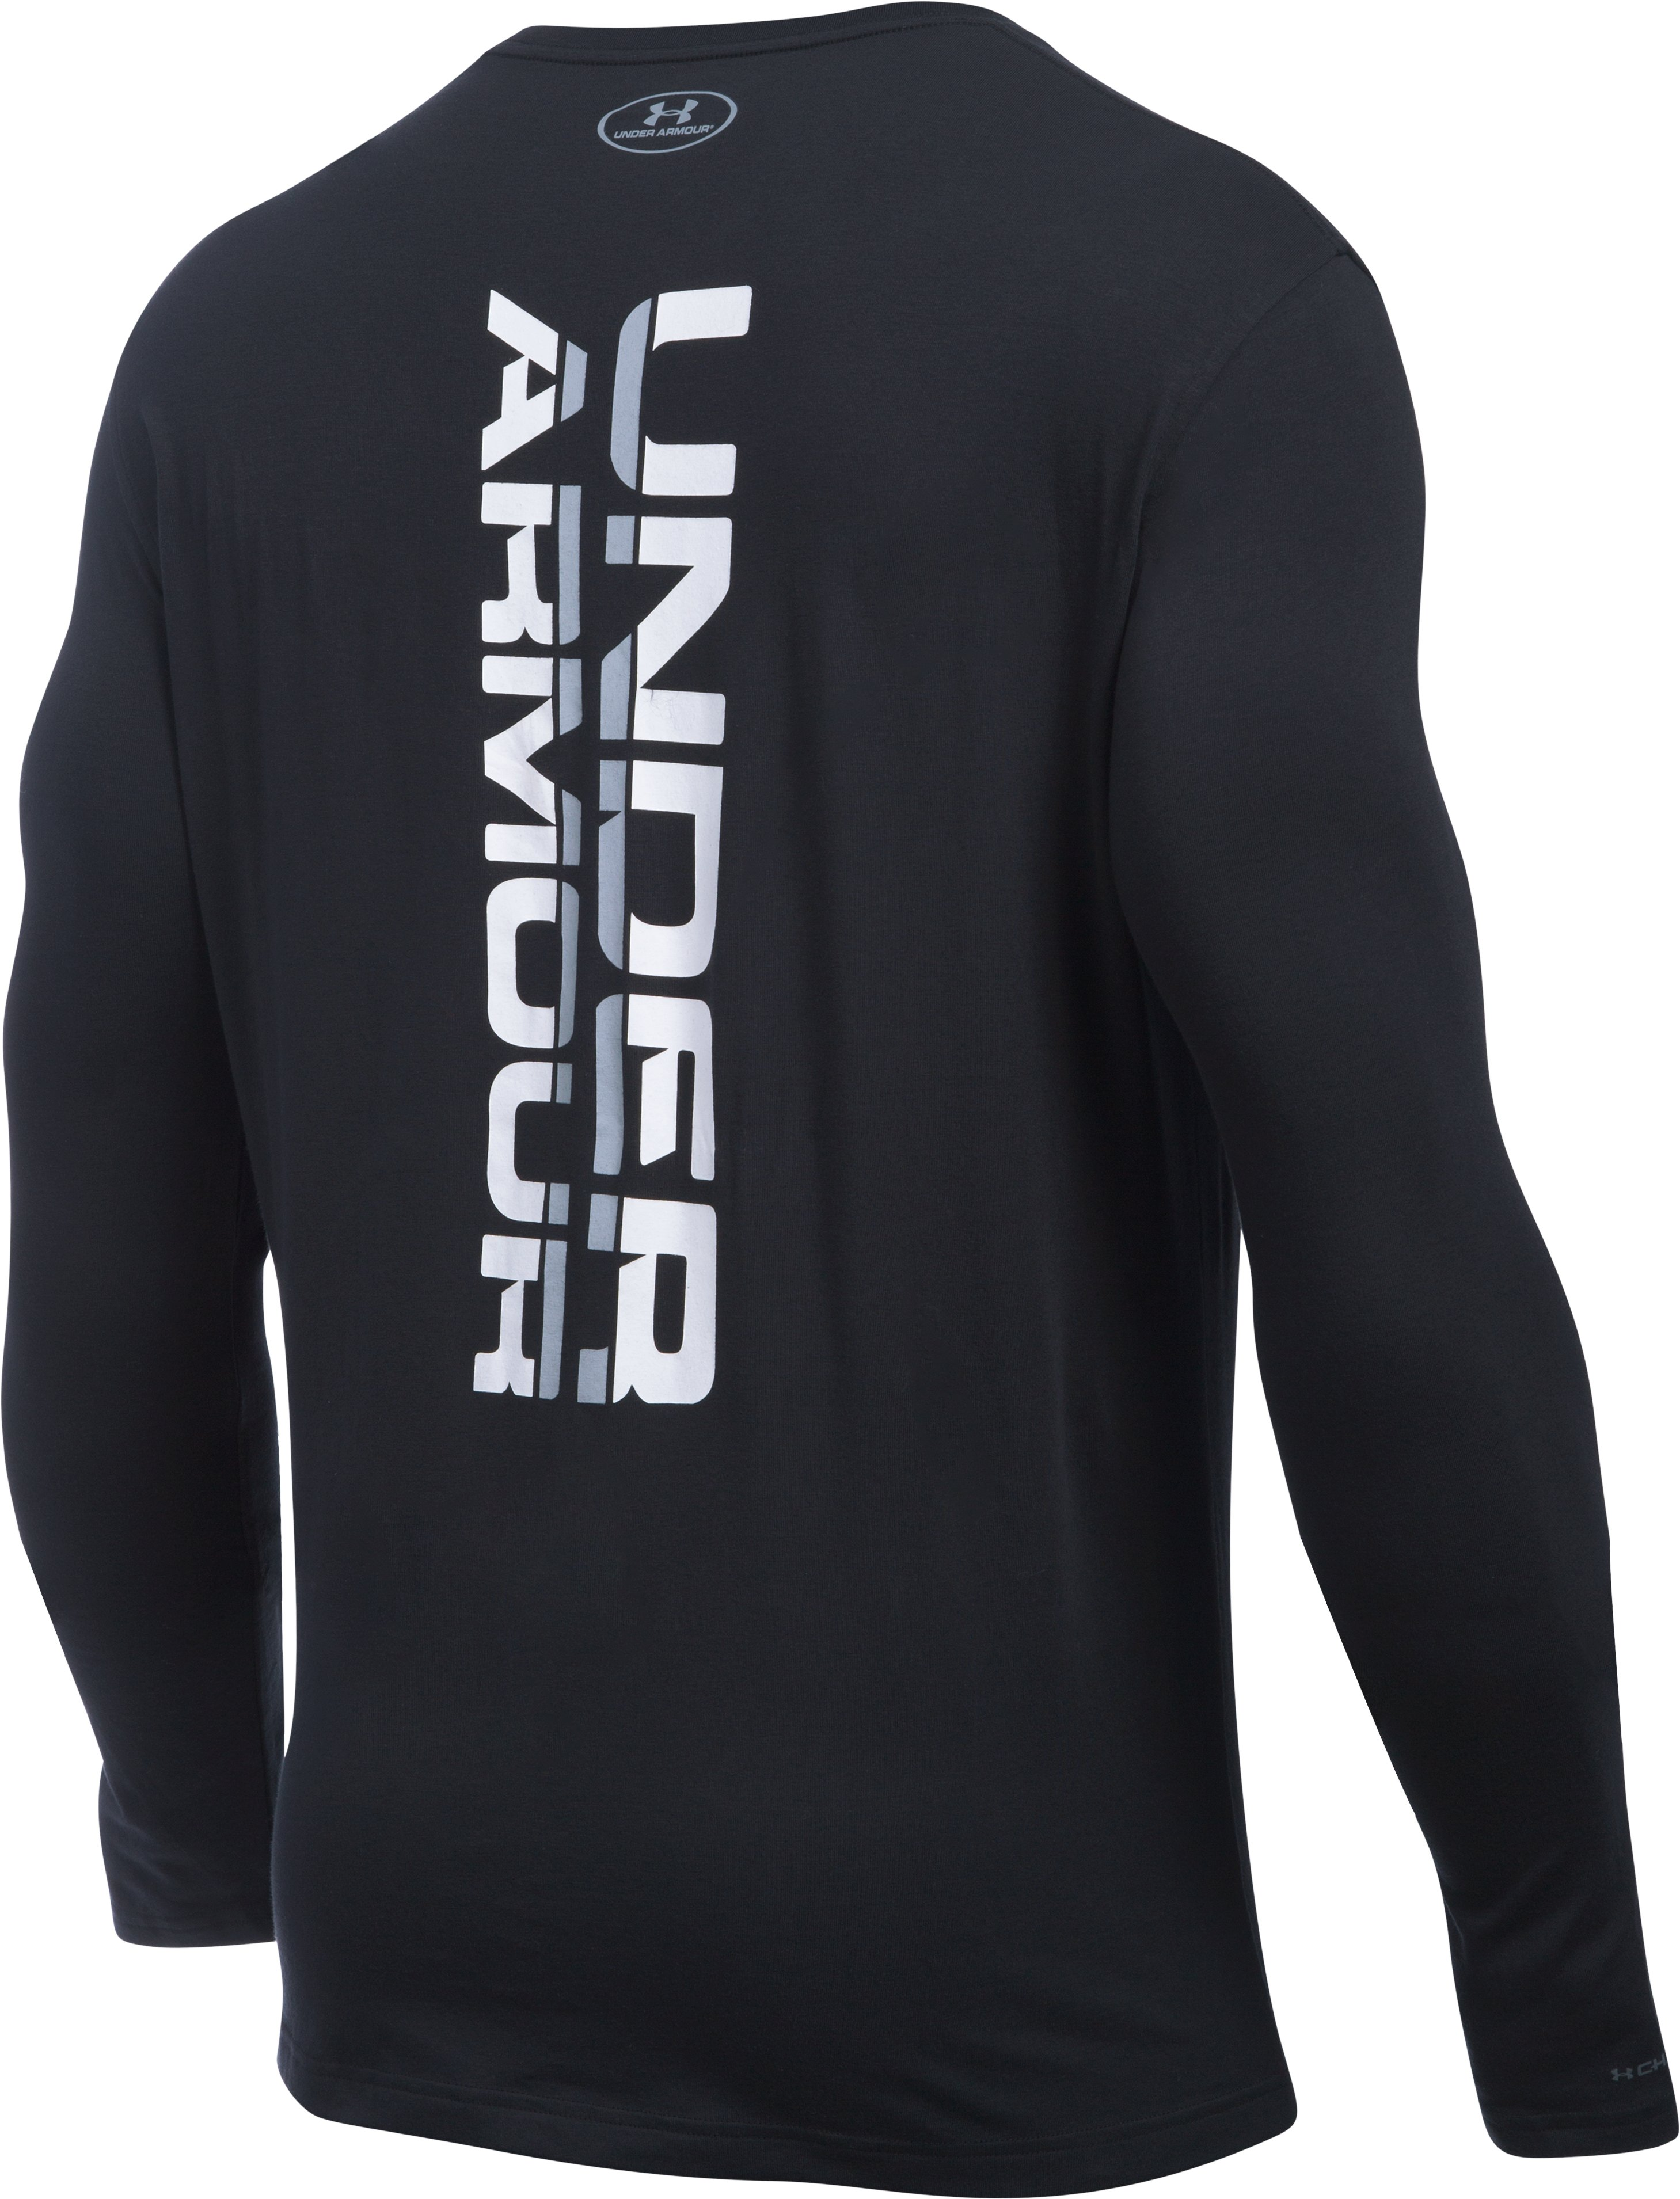 Men's UA Vertical Wordmark Long Sleeve T-Shirt, Black , undefined